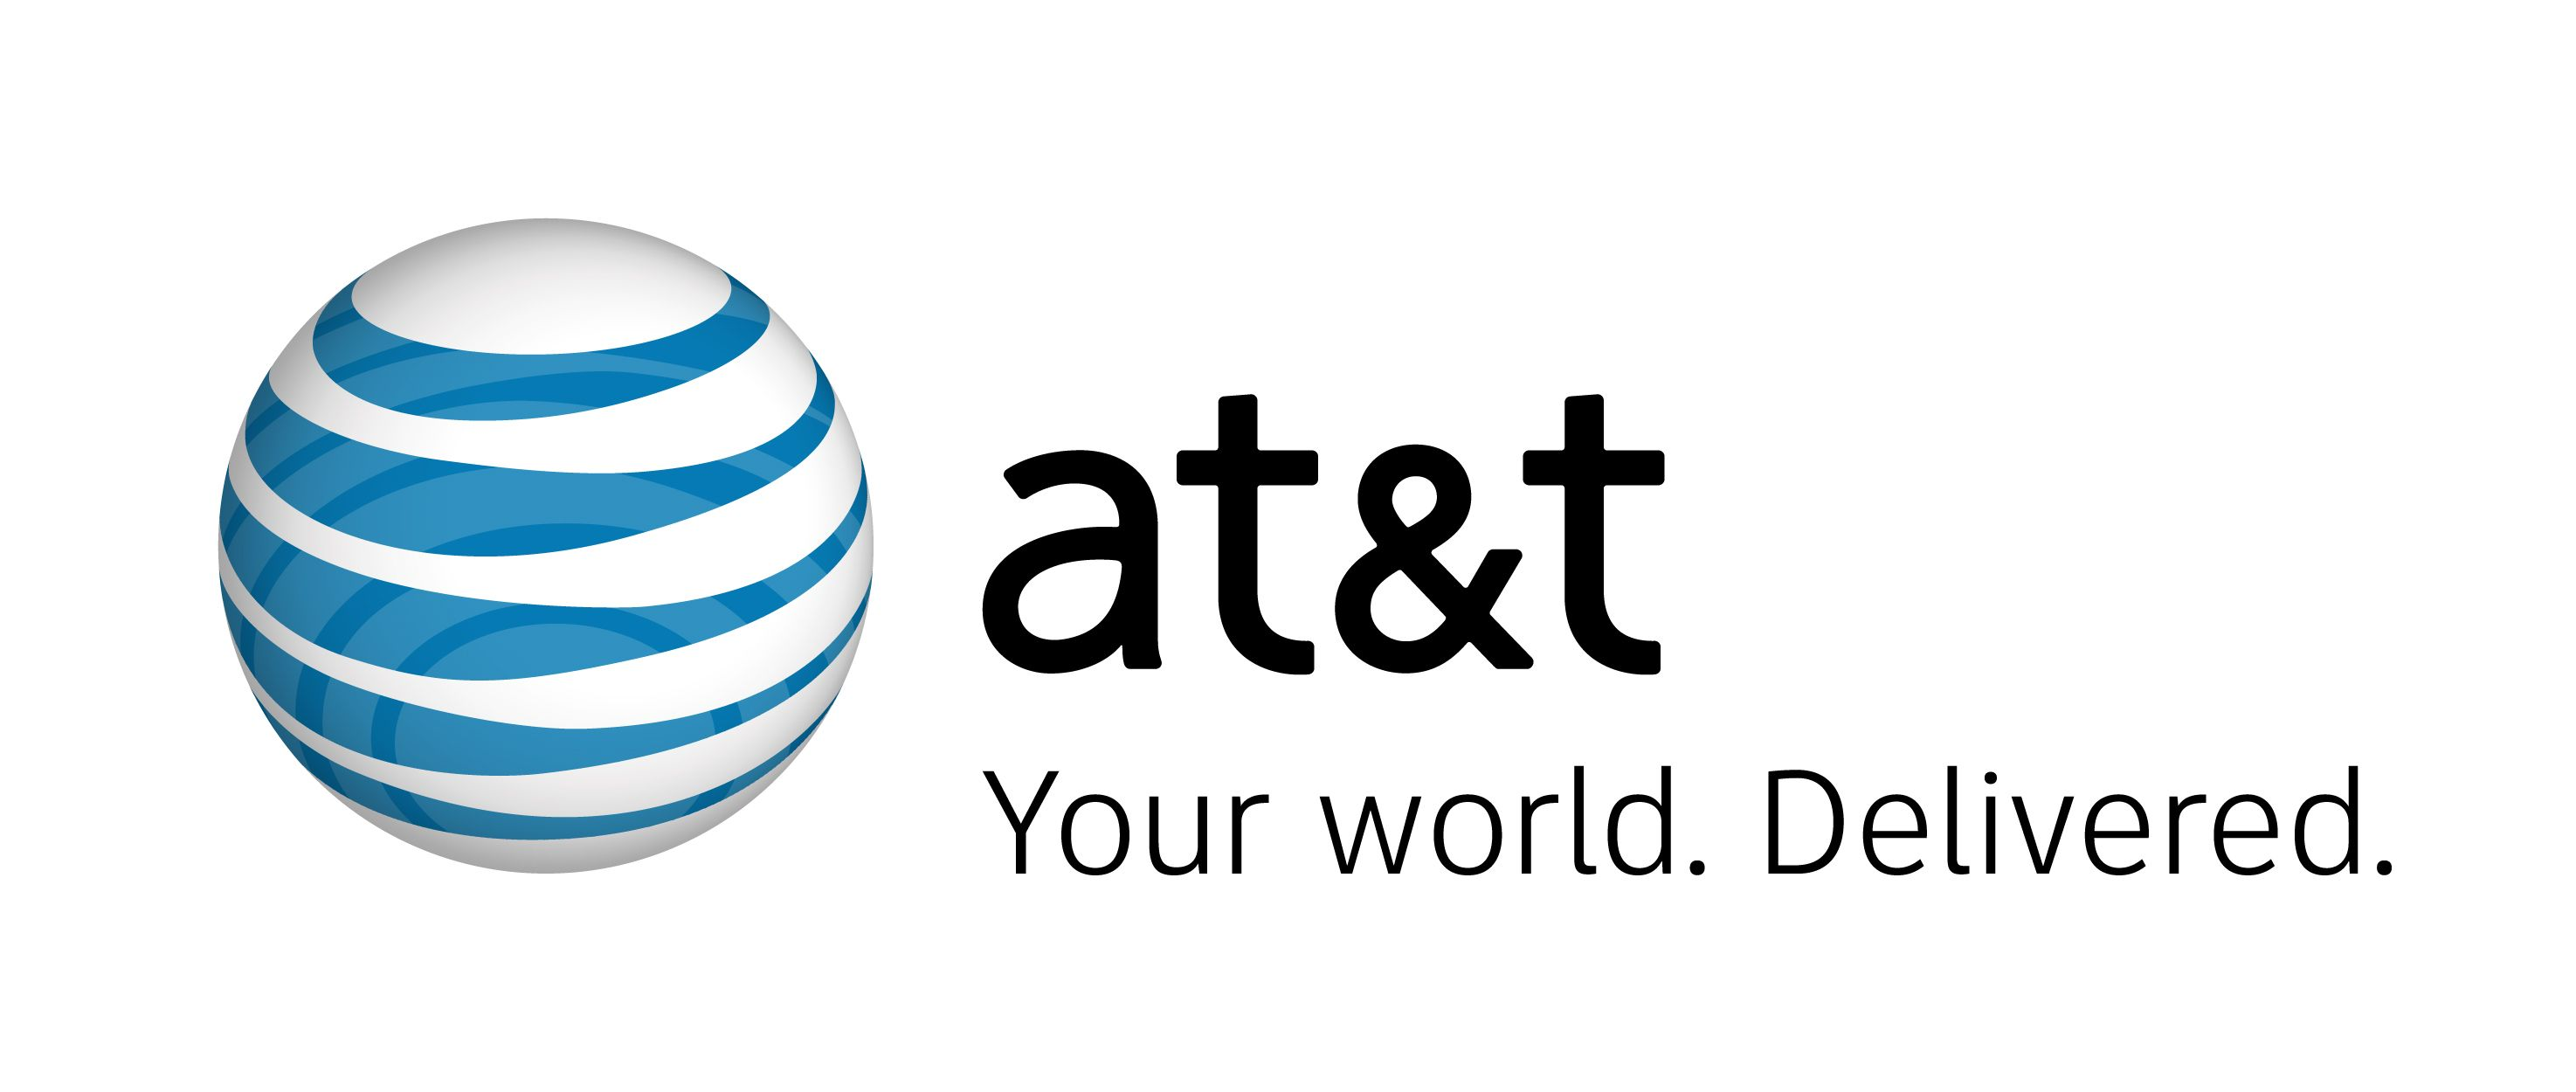 AT&T - Your World